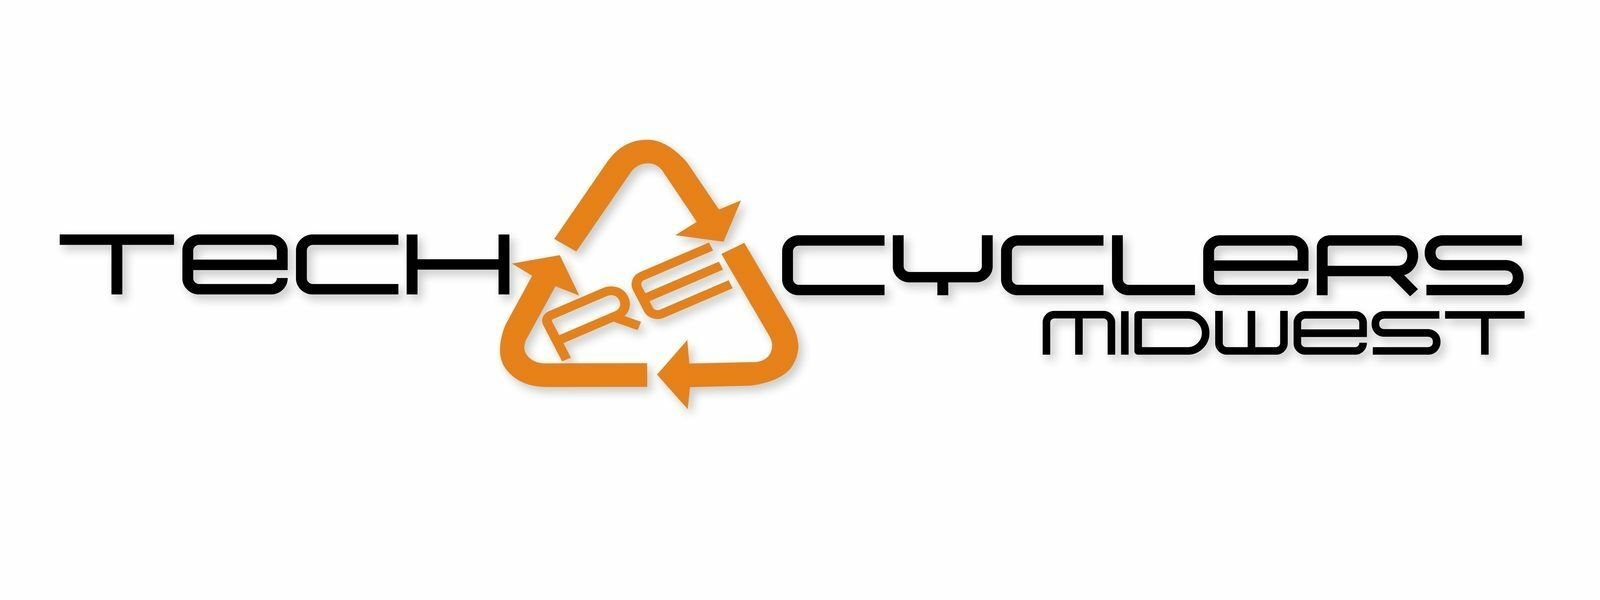 tech_recyclers_midwest